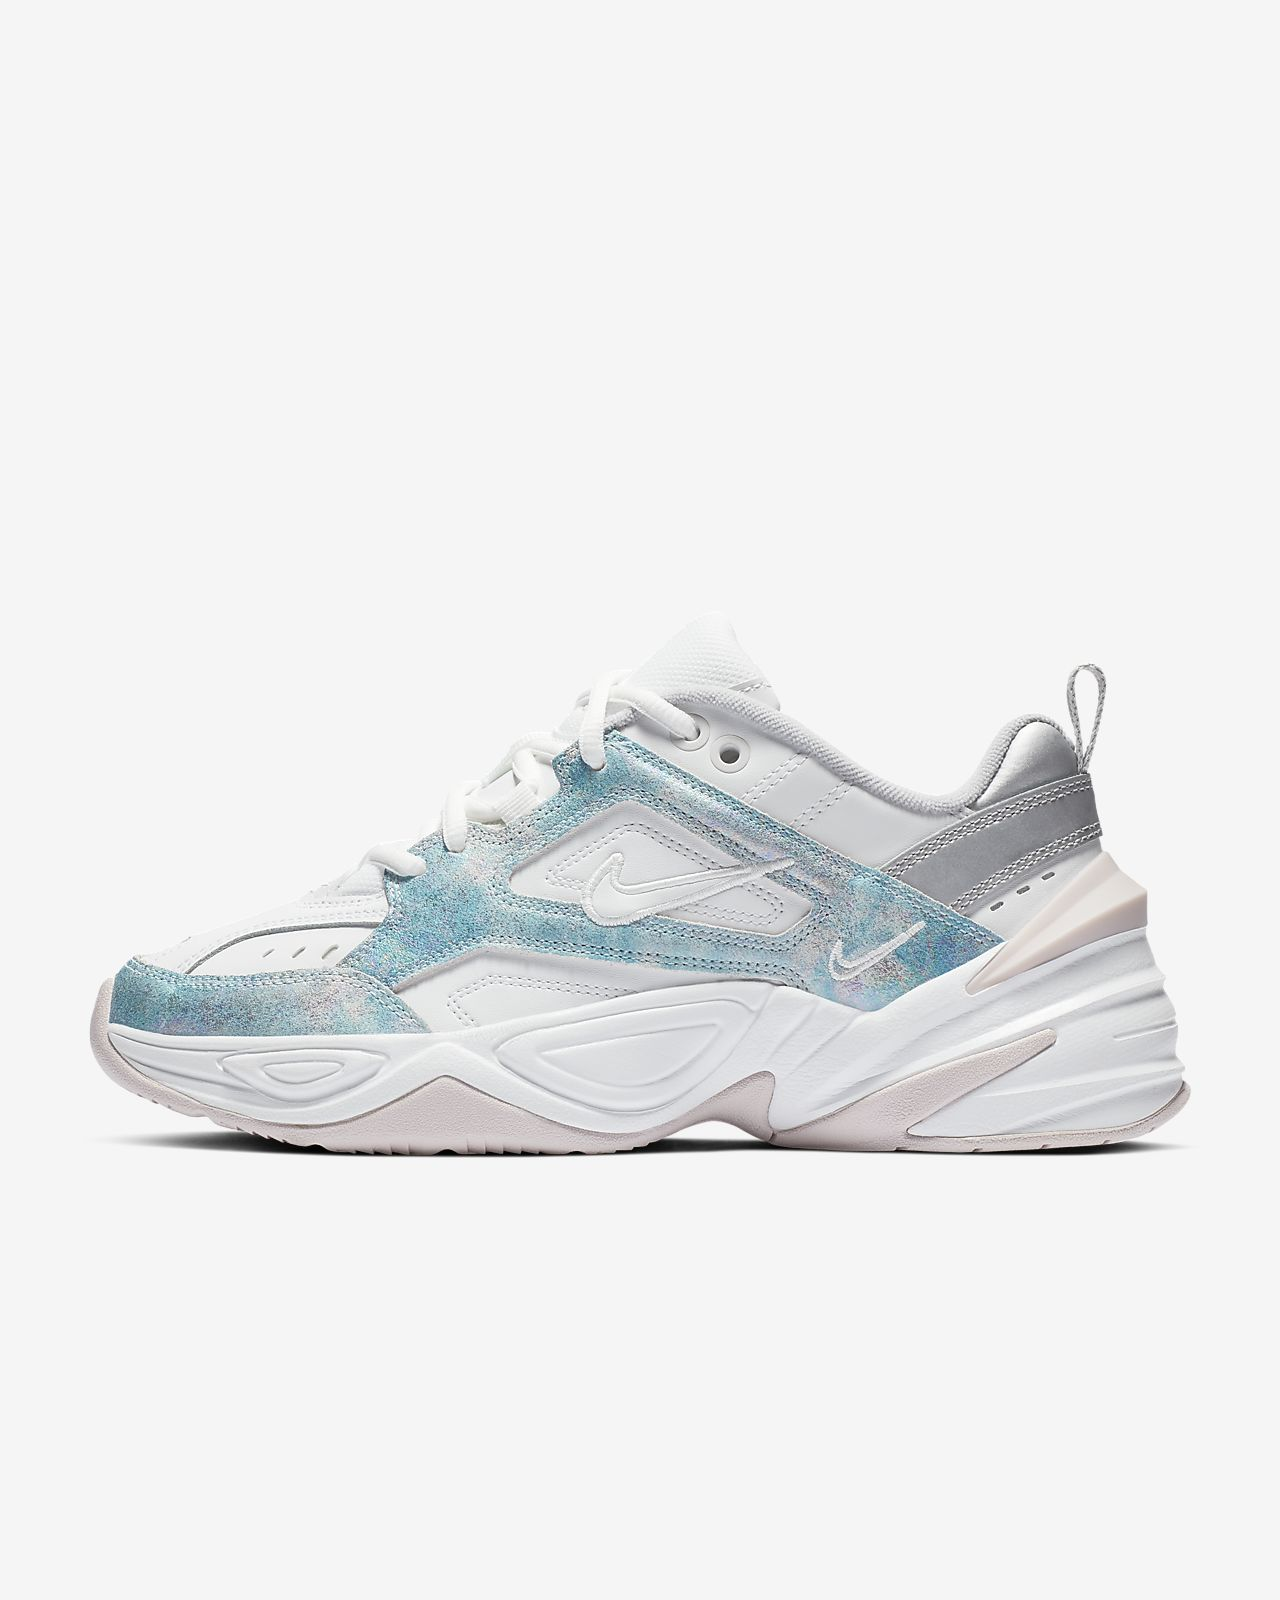 lower price with 5865b f604e Low Resolution Nike M2K Tekno Shoe Nike M2K Tekno Shoe